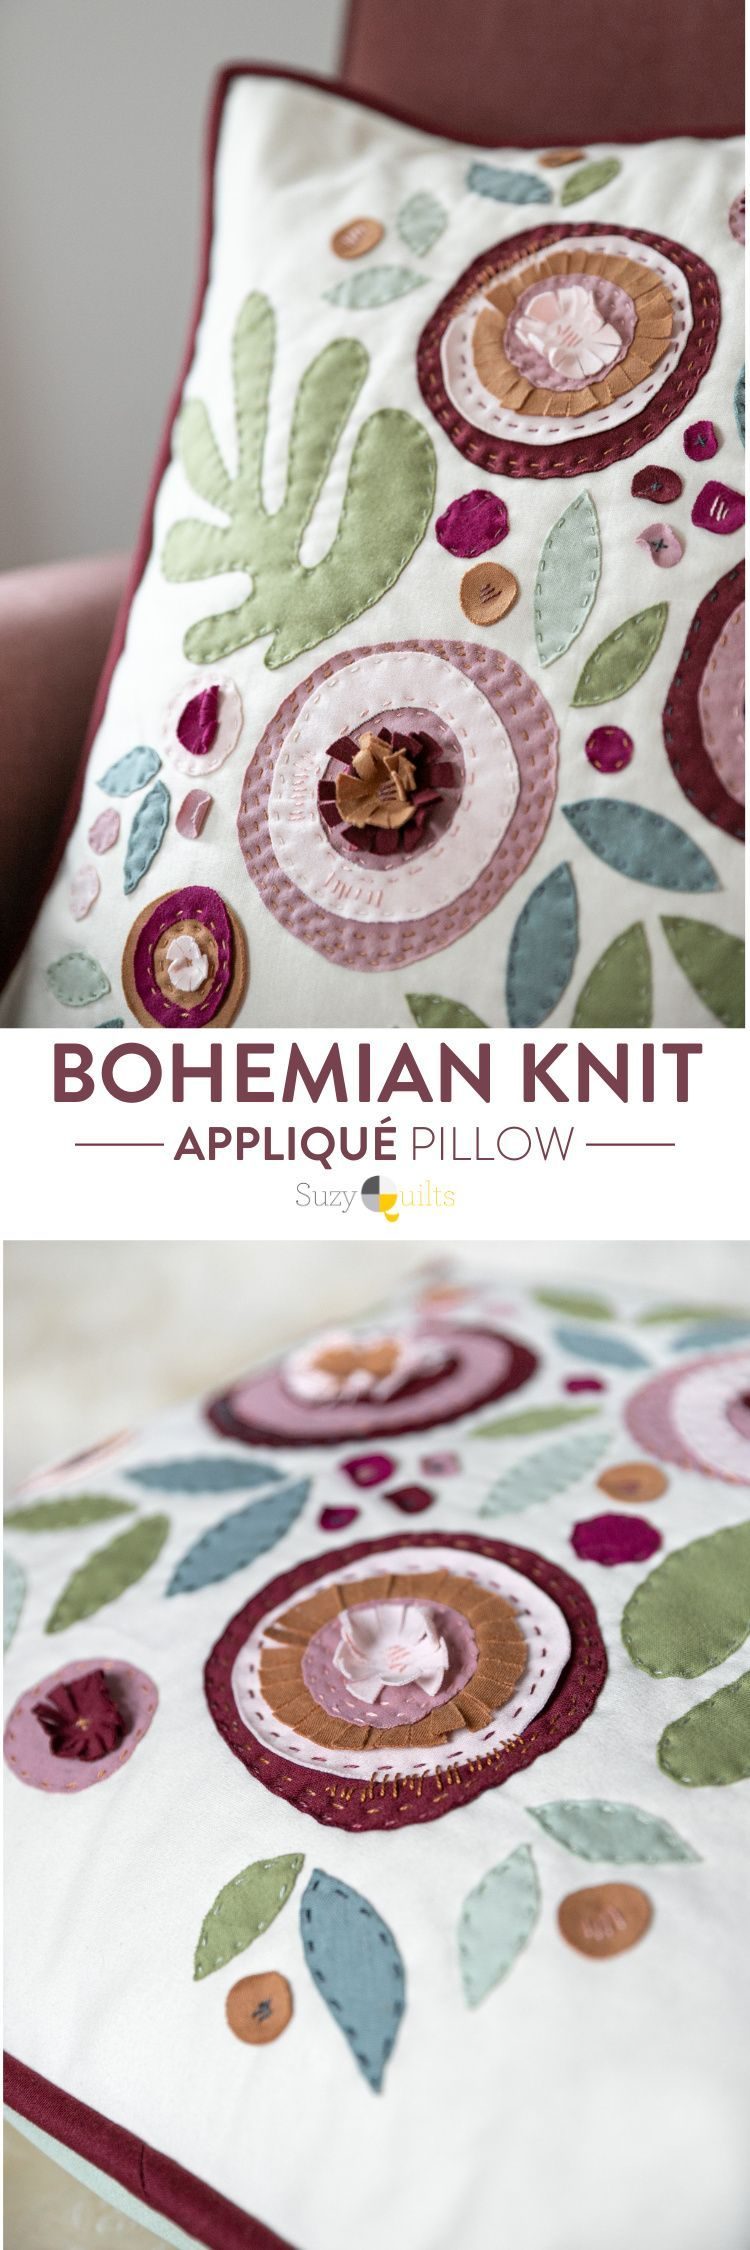 How to Make a Modern Appliqué Pillow With Knits - Suzy Quilts